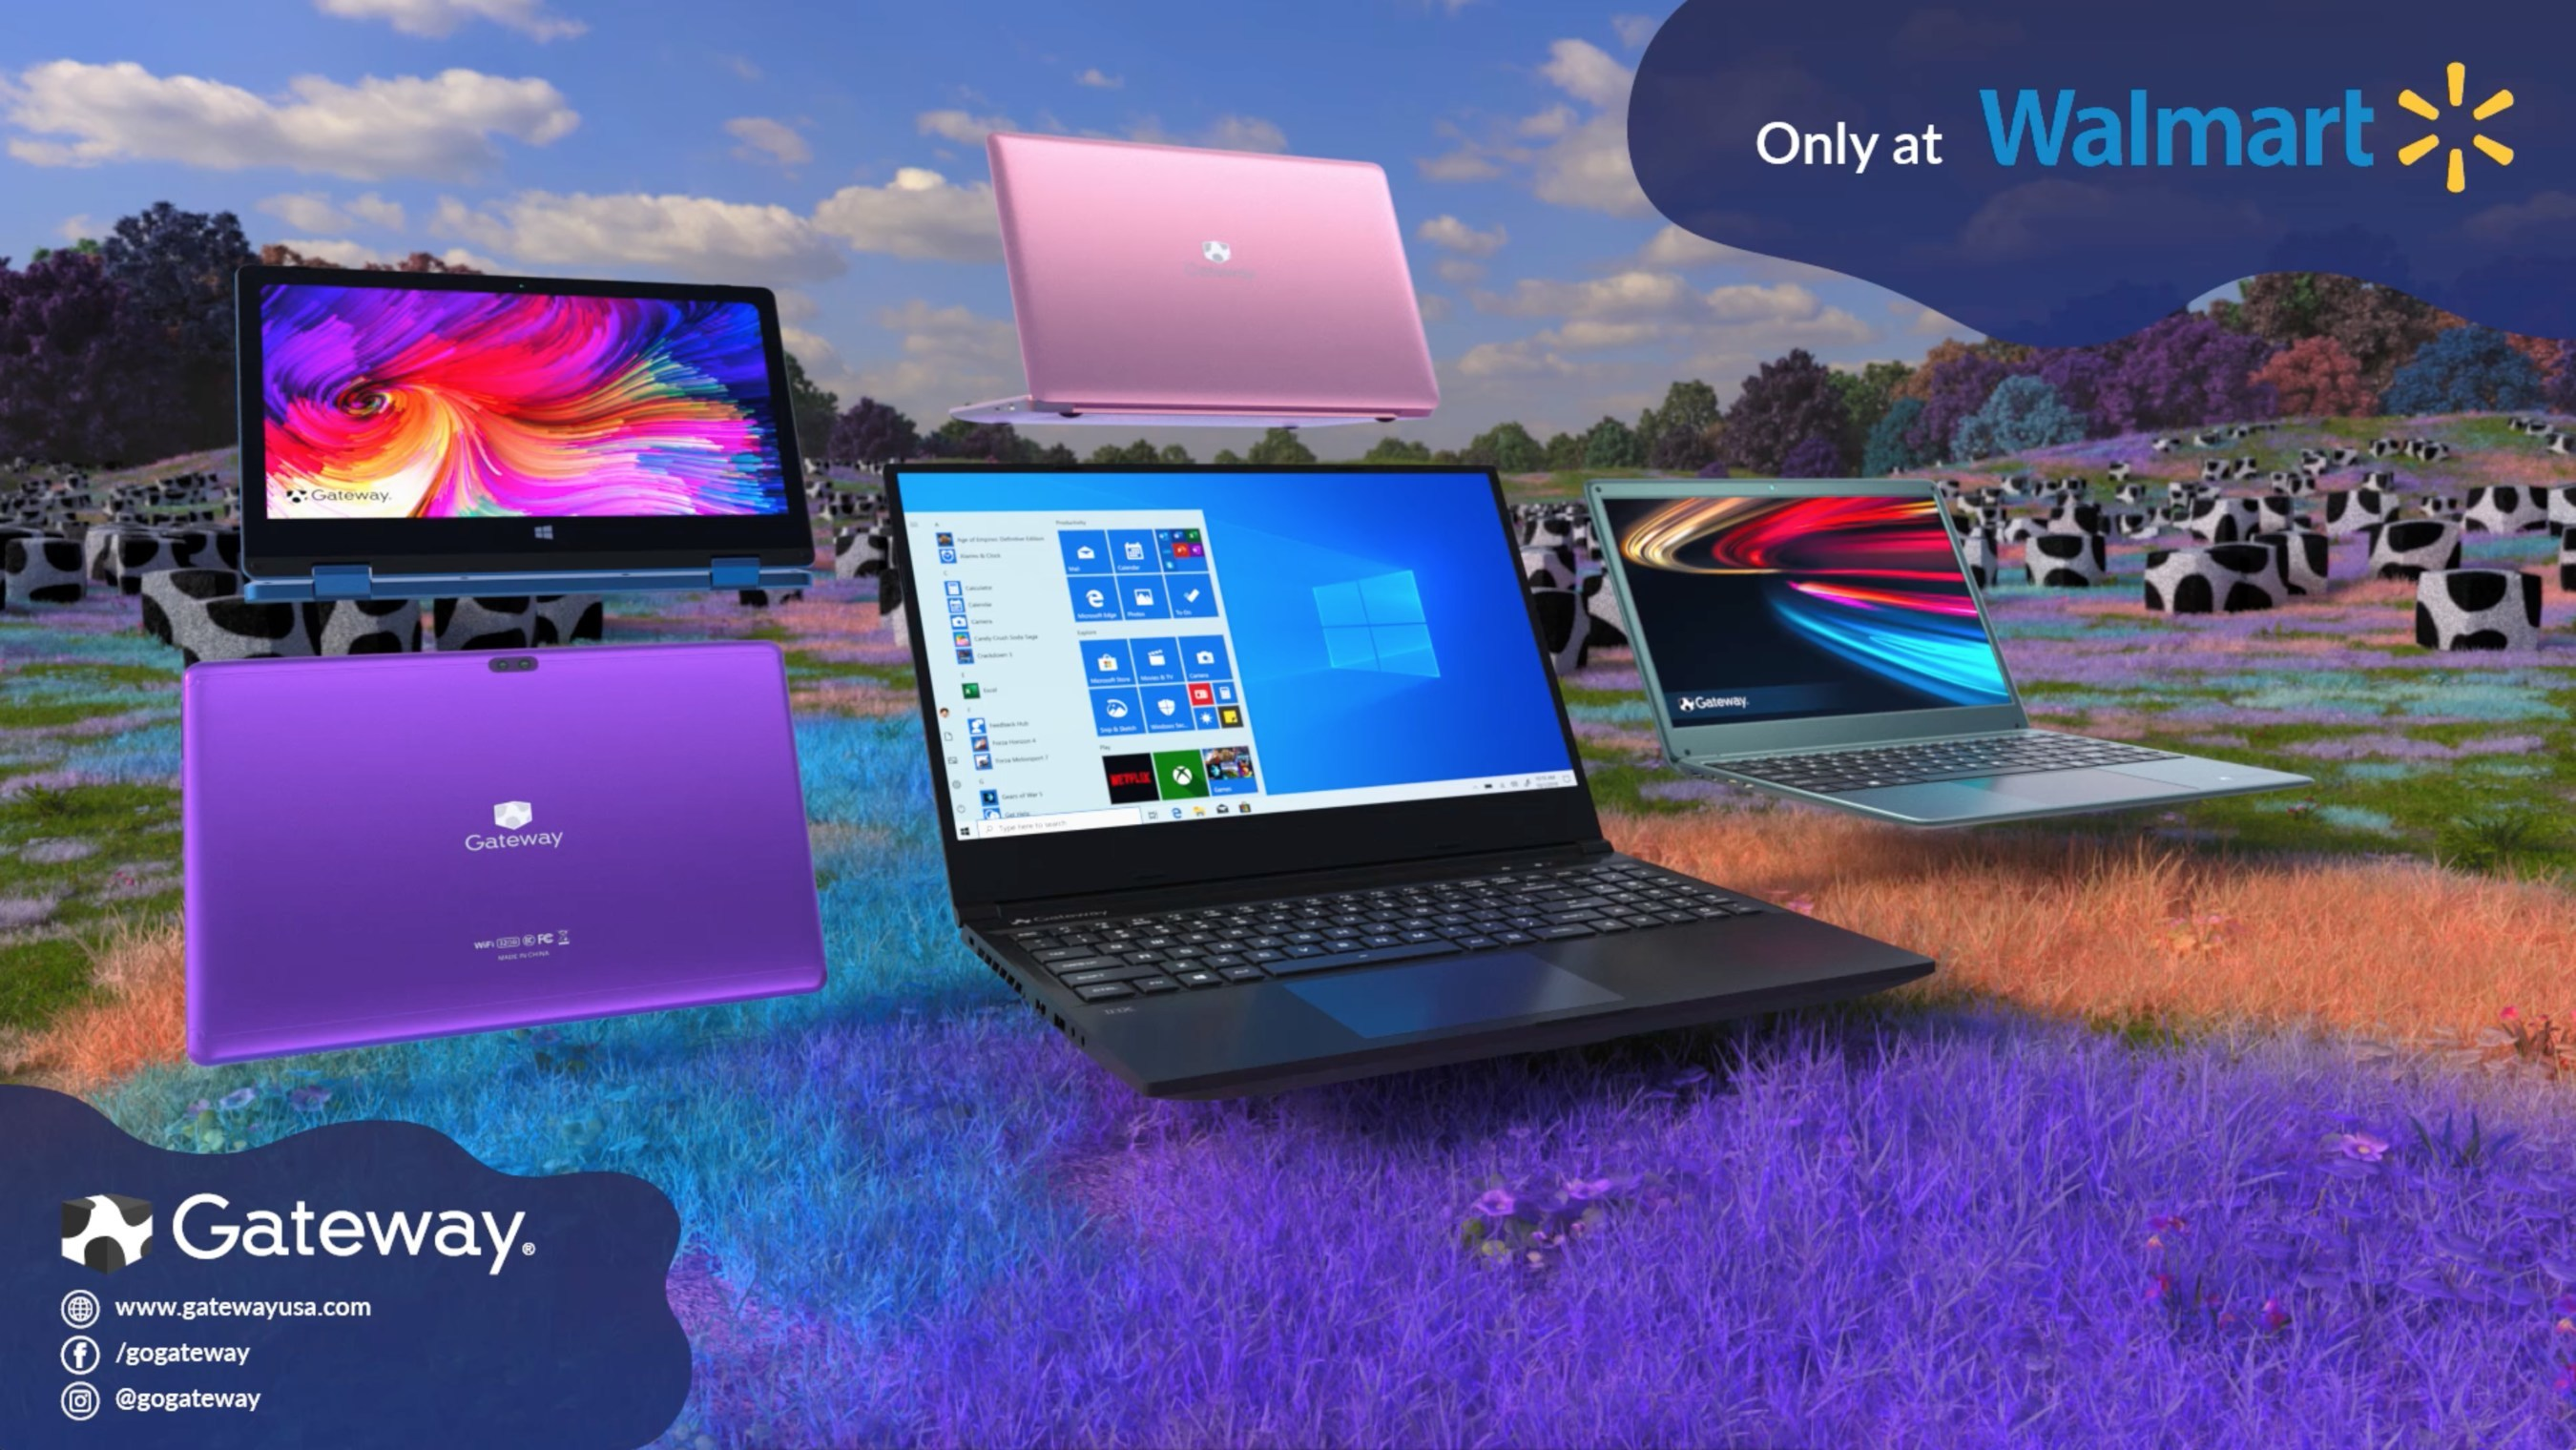 Iconic Cow Spotted Gateway Pc Brand Returns With Full Line Of Laptops Sold Exclusively At Walmart Com